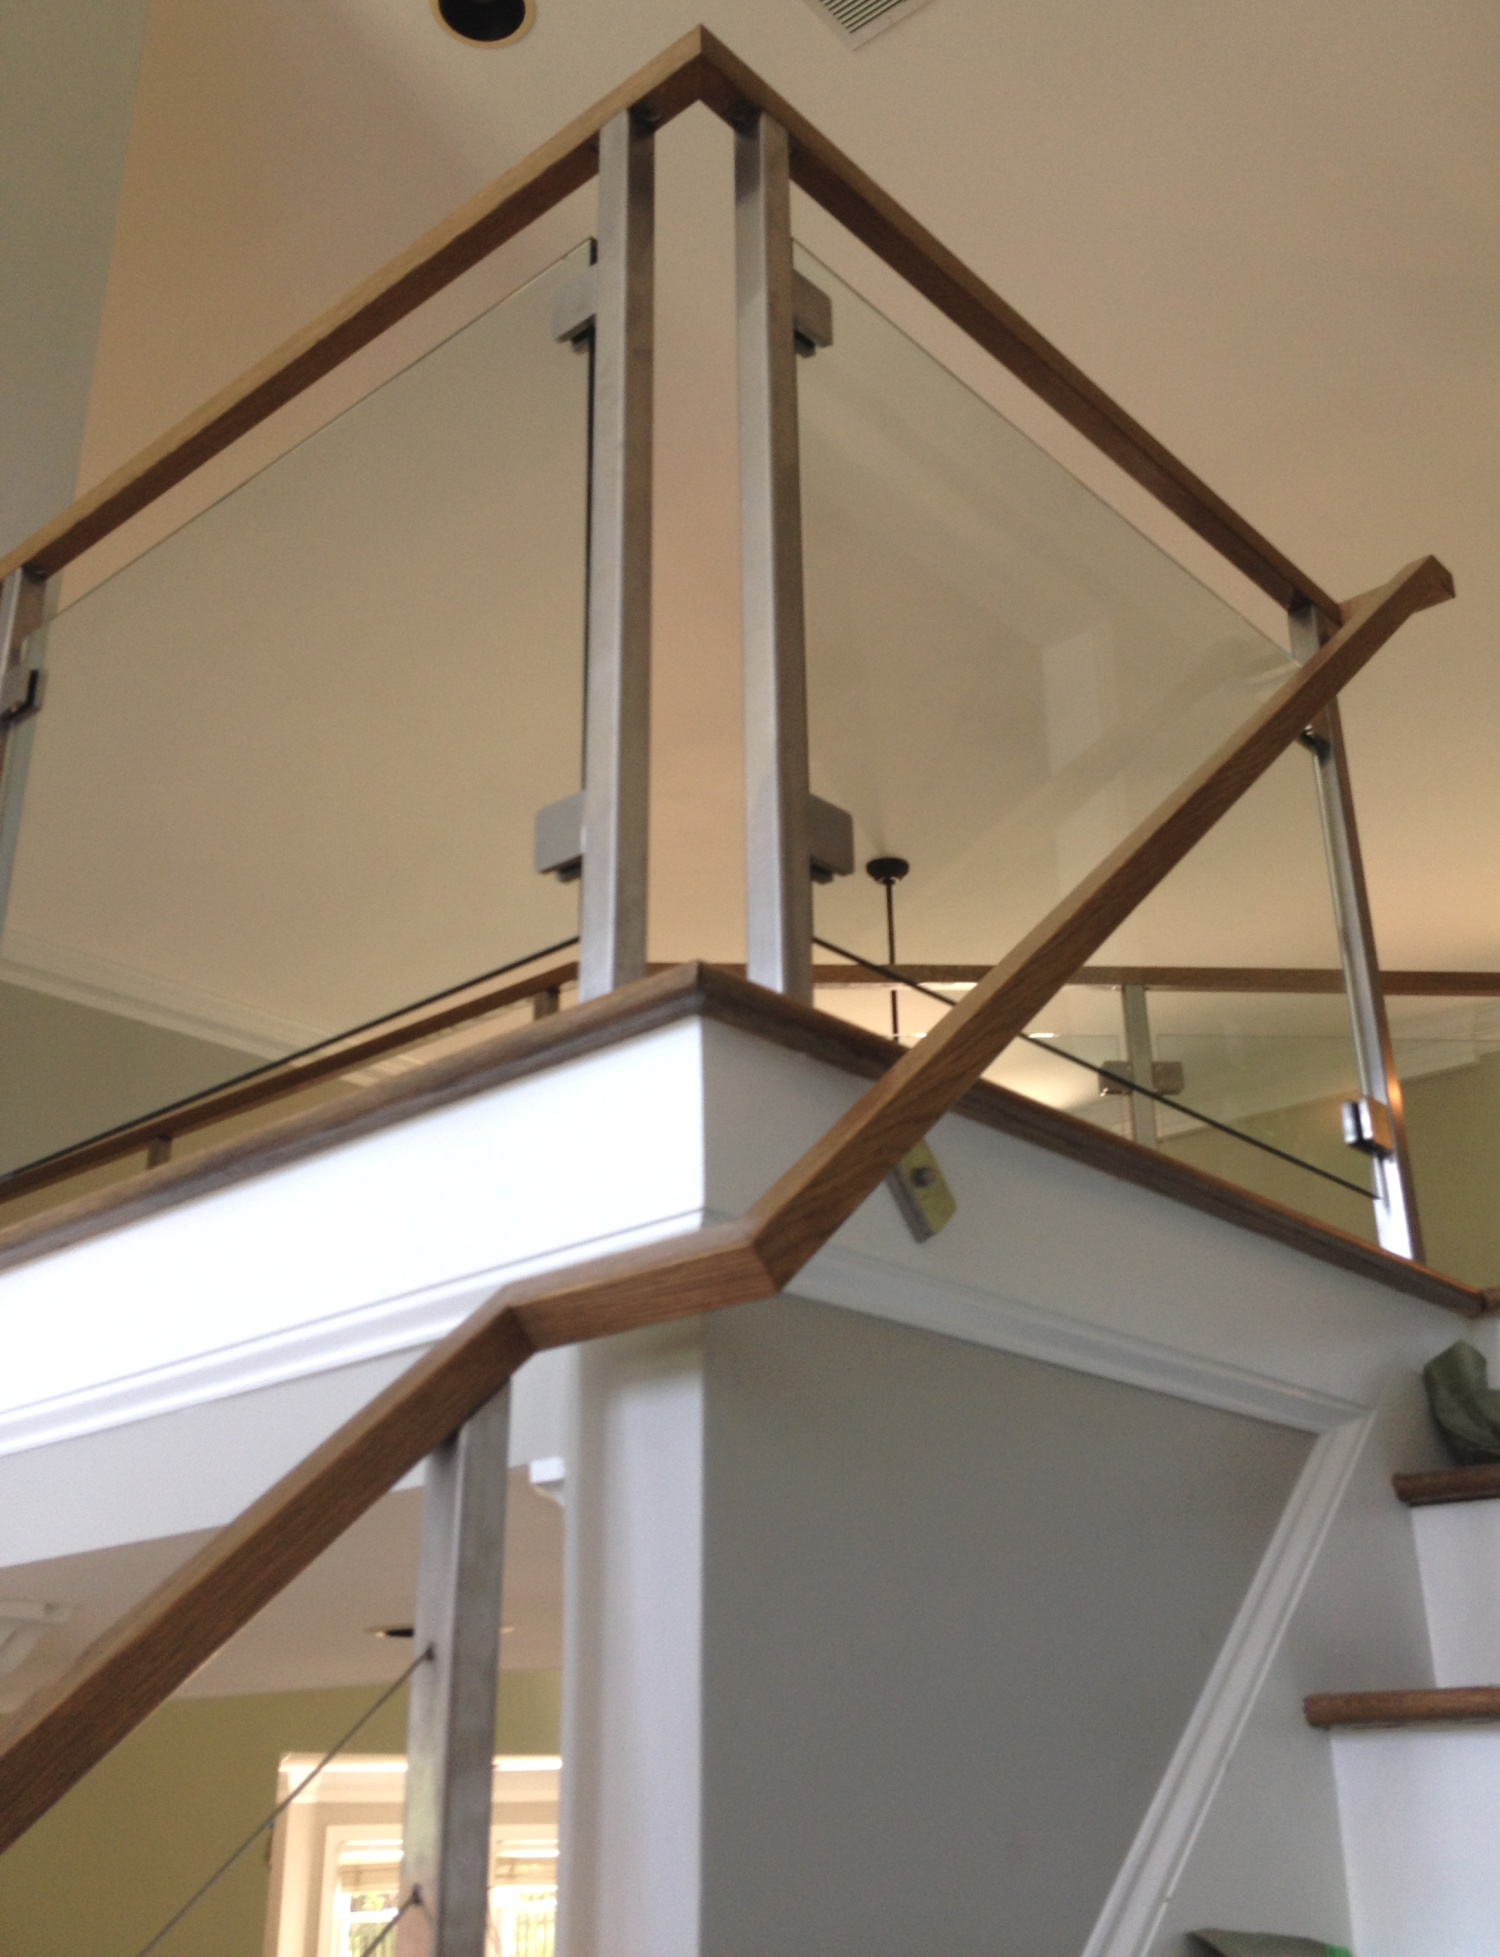 Stainless steel, glass and cable railing